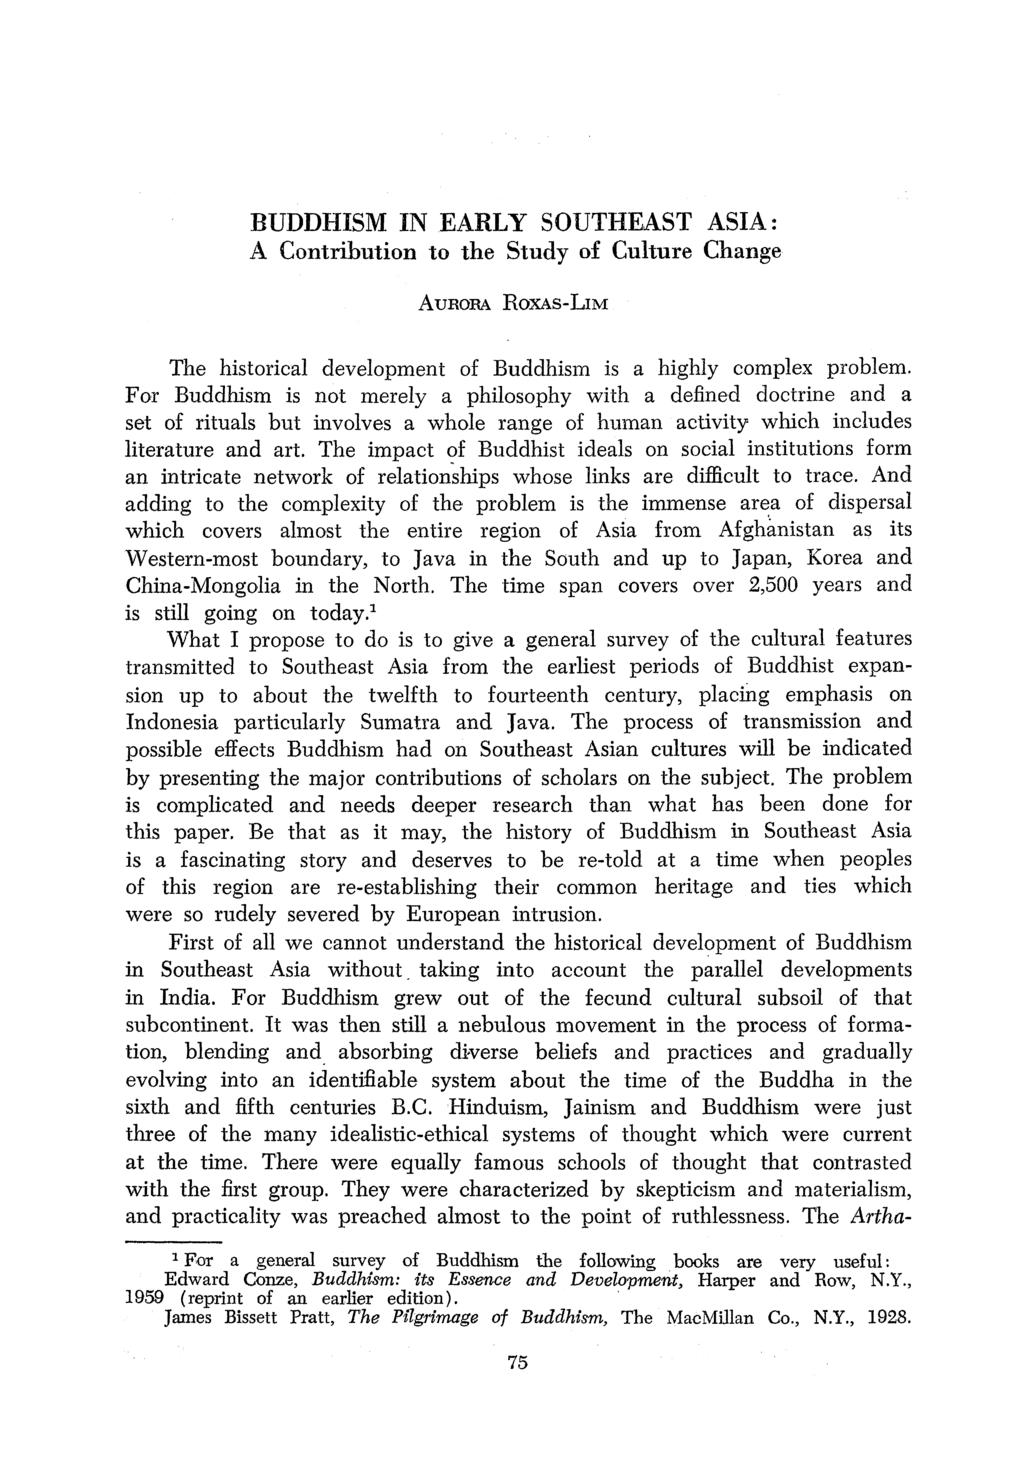 The asian center asian studies pdf buddhism in early southeast asia a contribution to the study of culture change aurora roxas fandeluxe Image collections